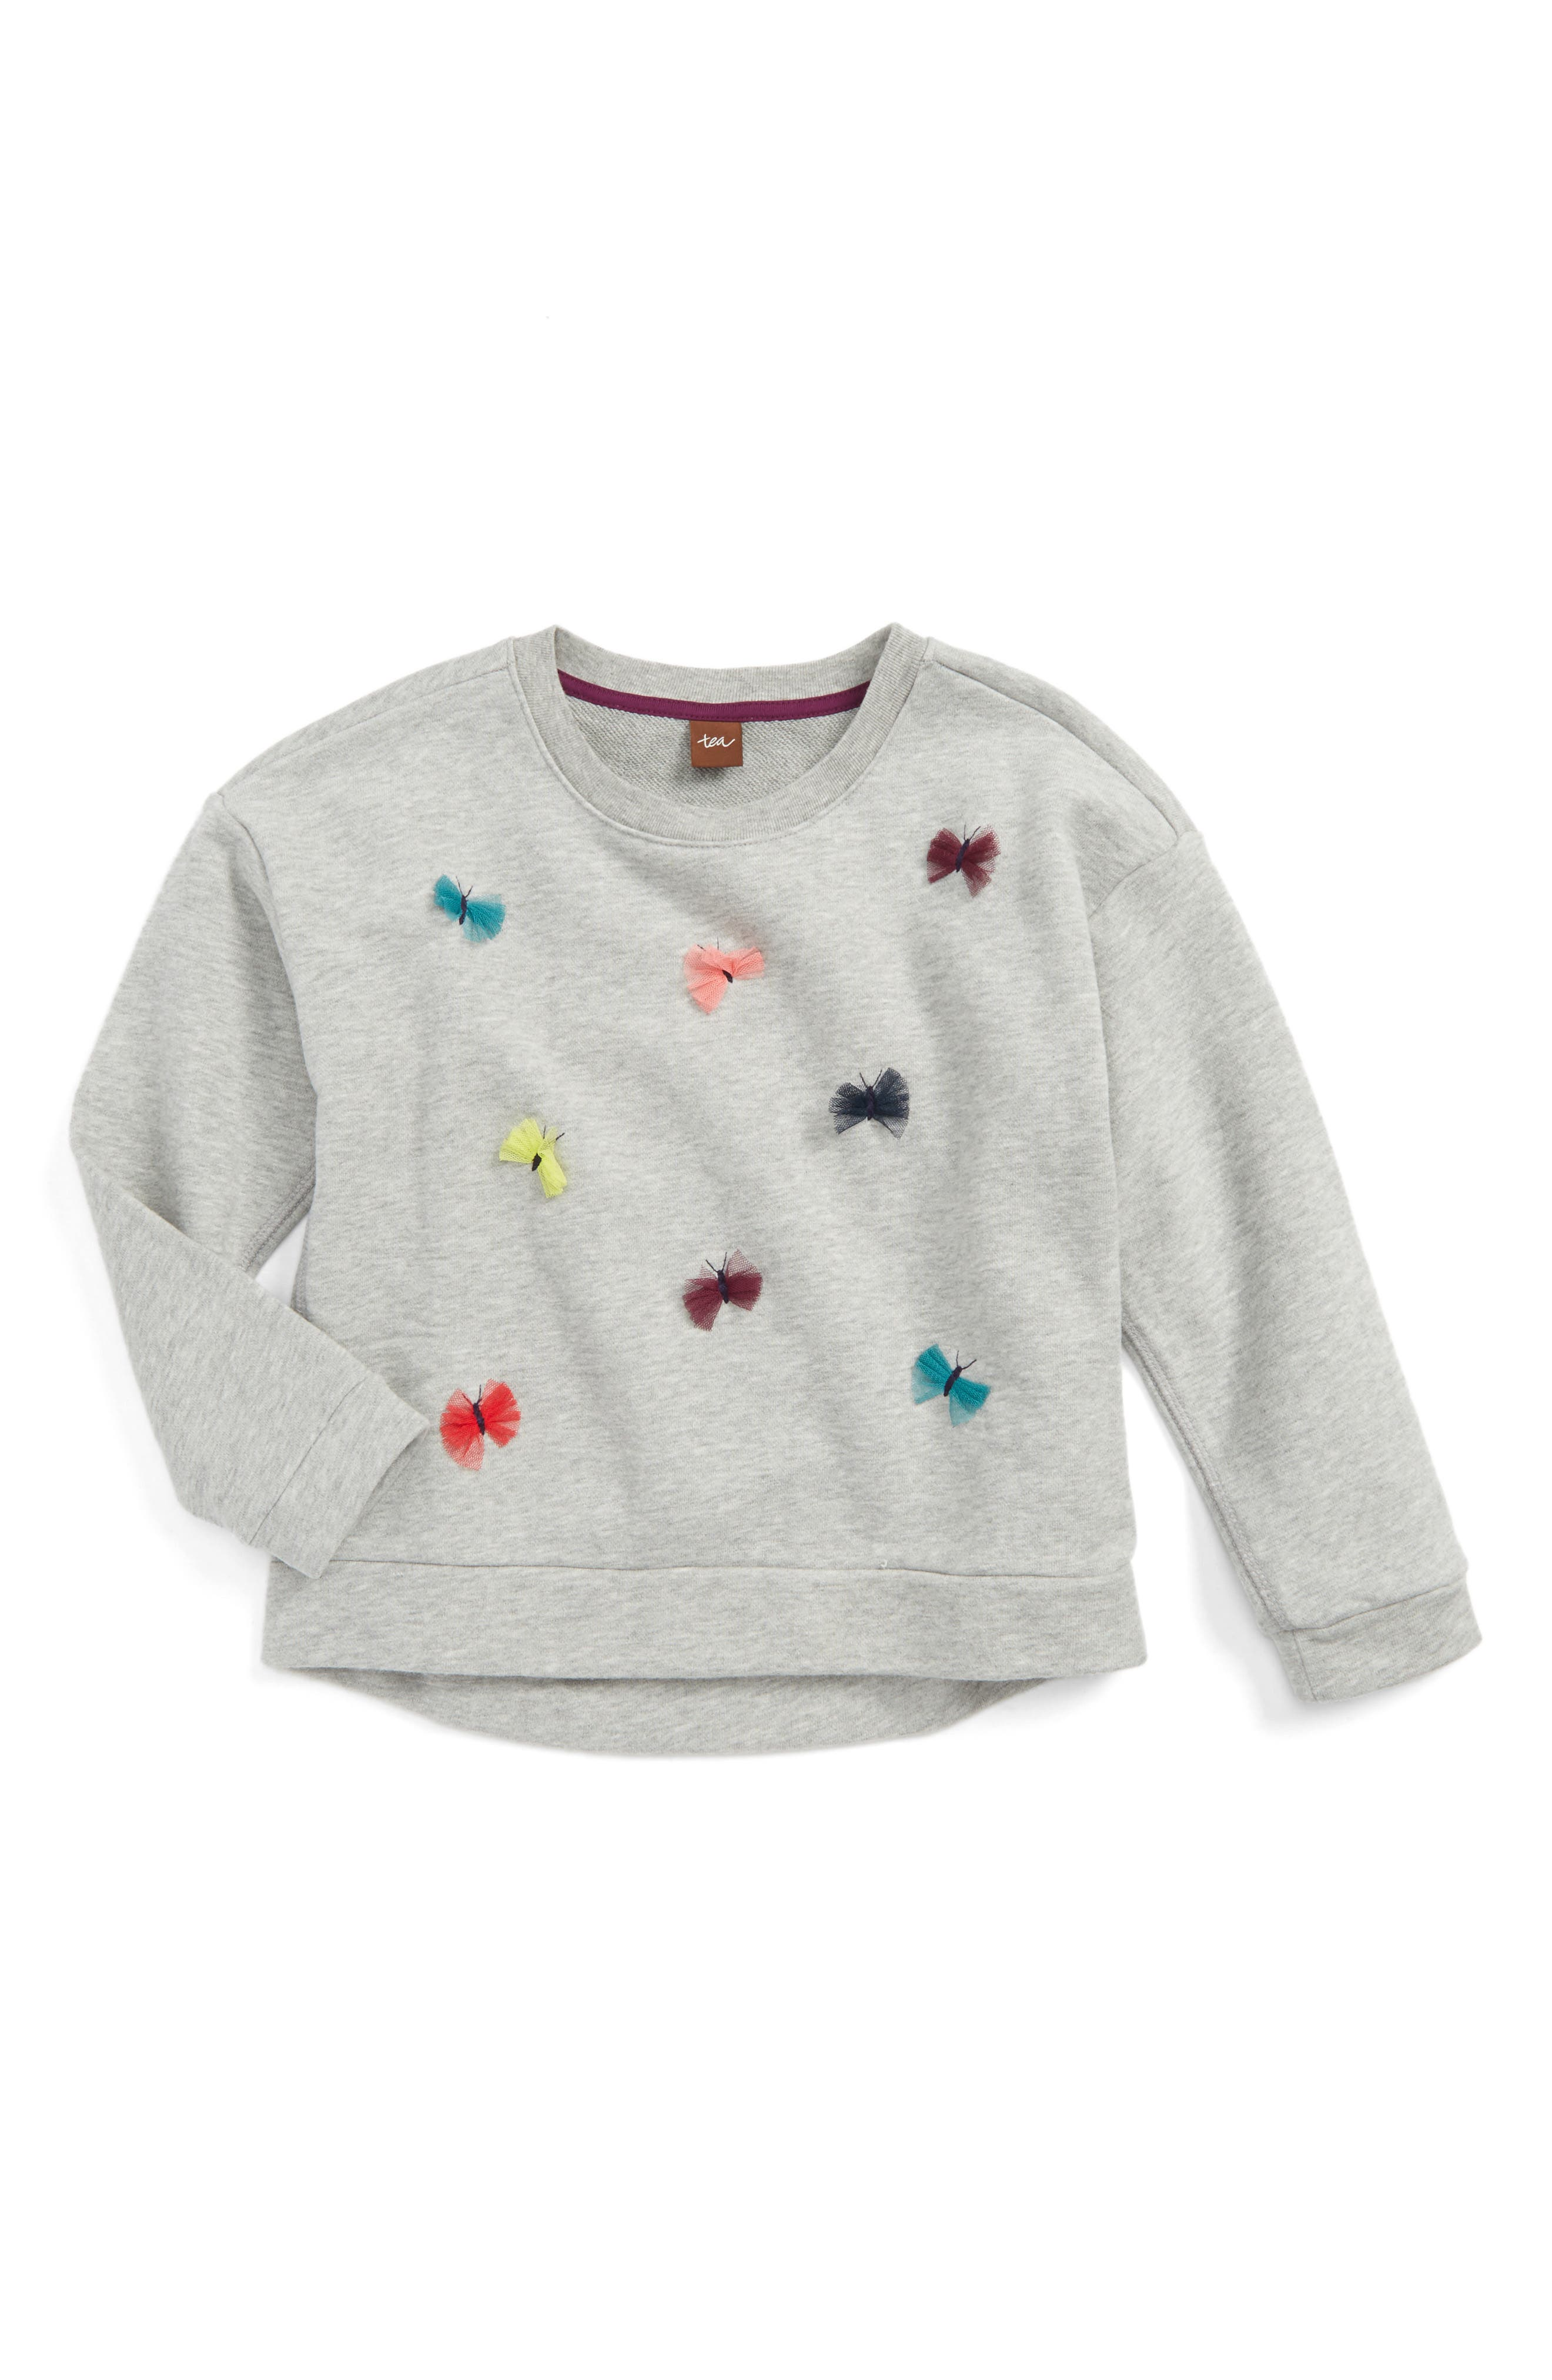 Tea Collection Dealan-De 3D Embellished Sweater (Toddler Girls, Little Girls & Big Girls)